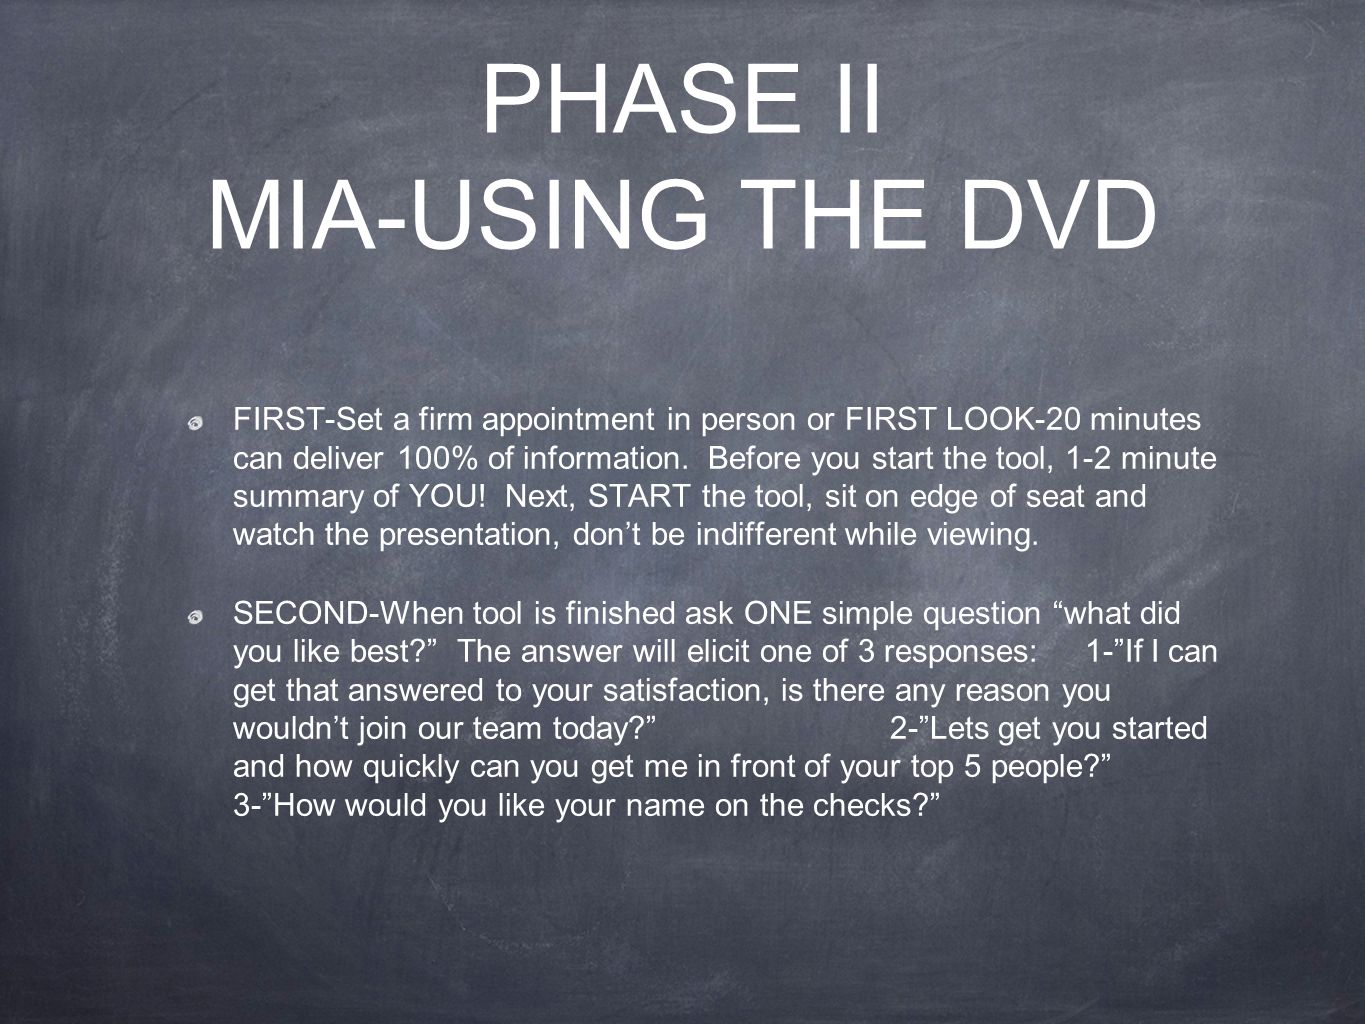 PHASE II MIA-USING THE DVD